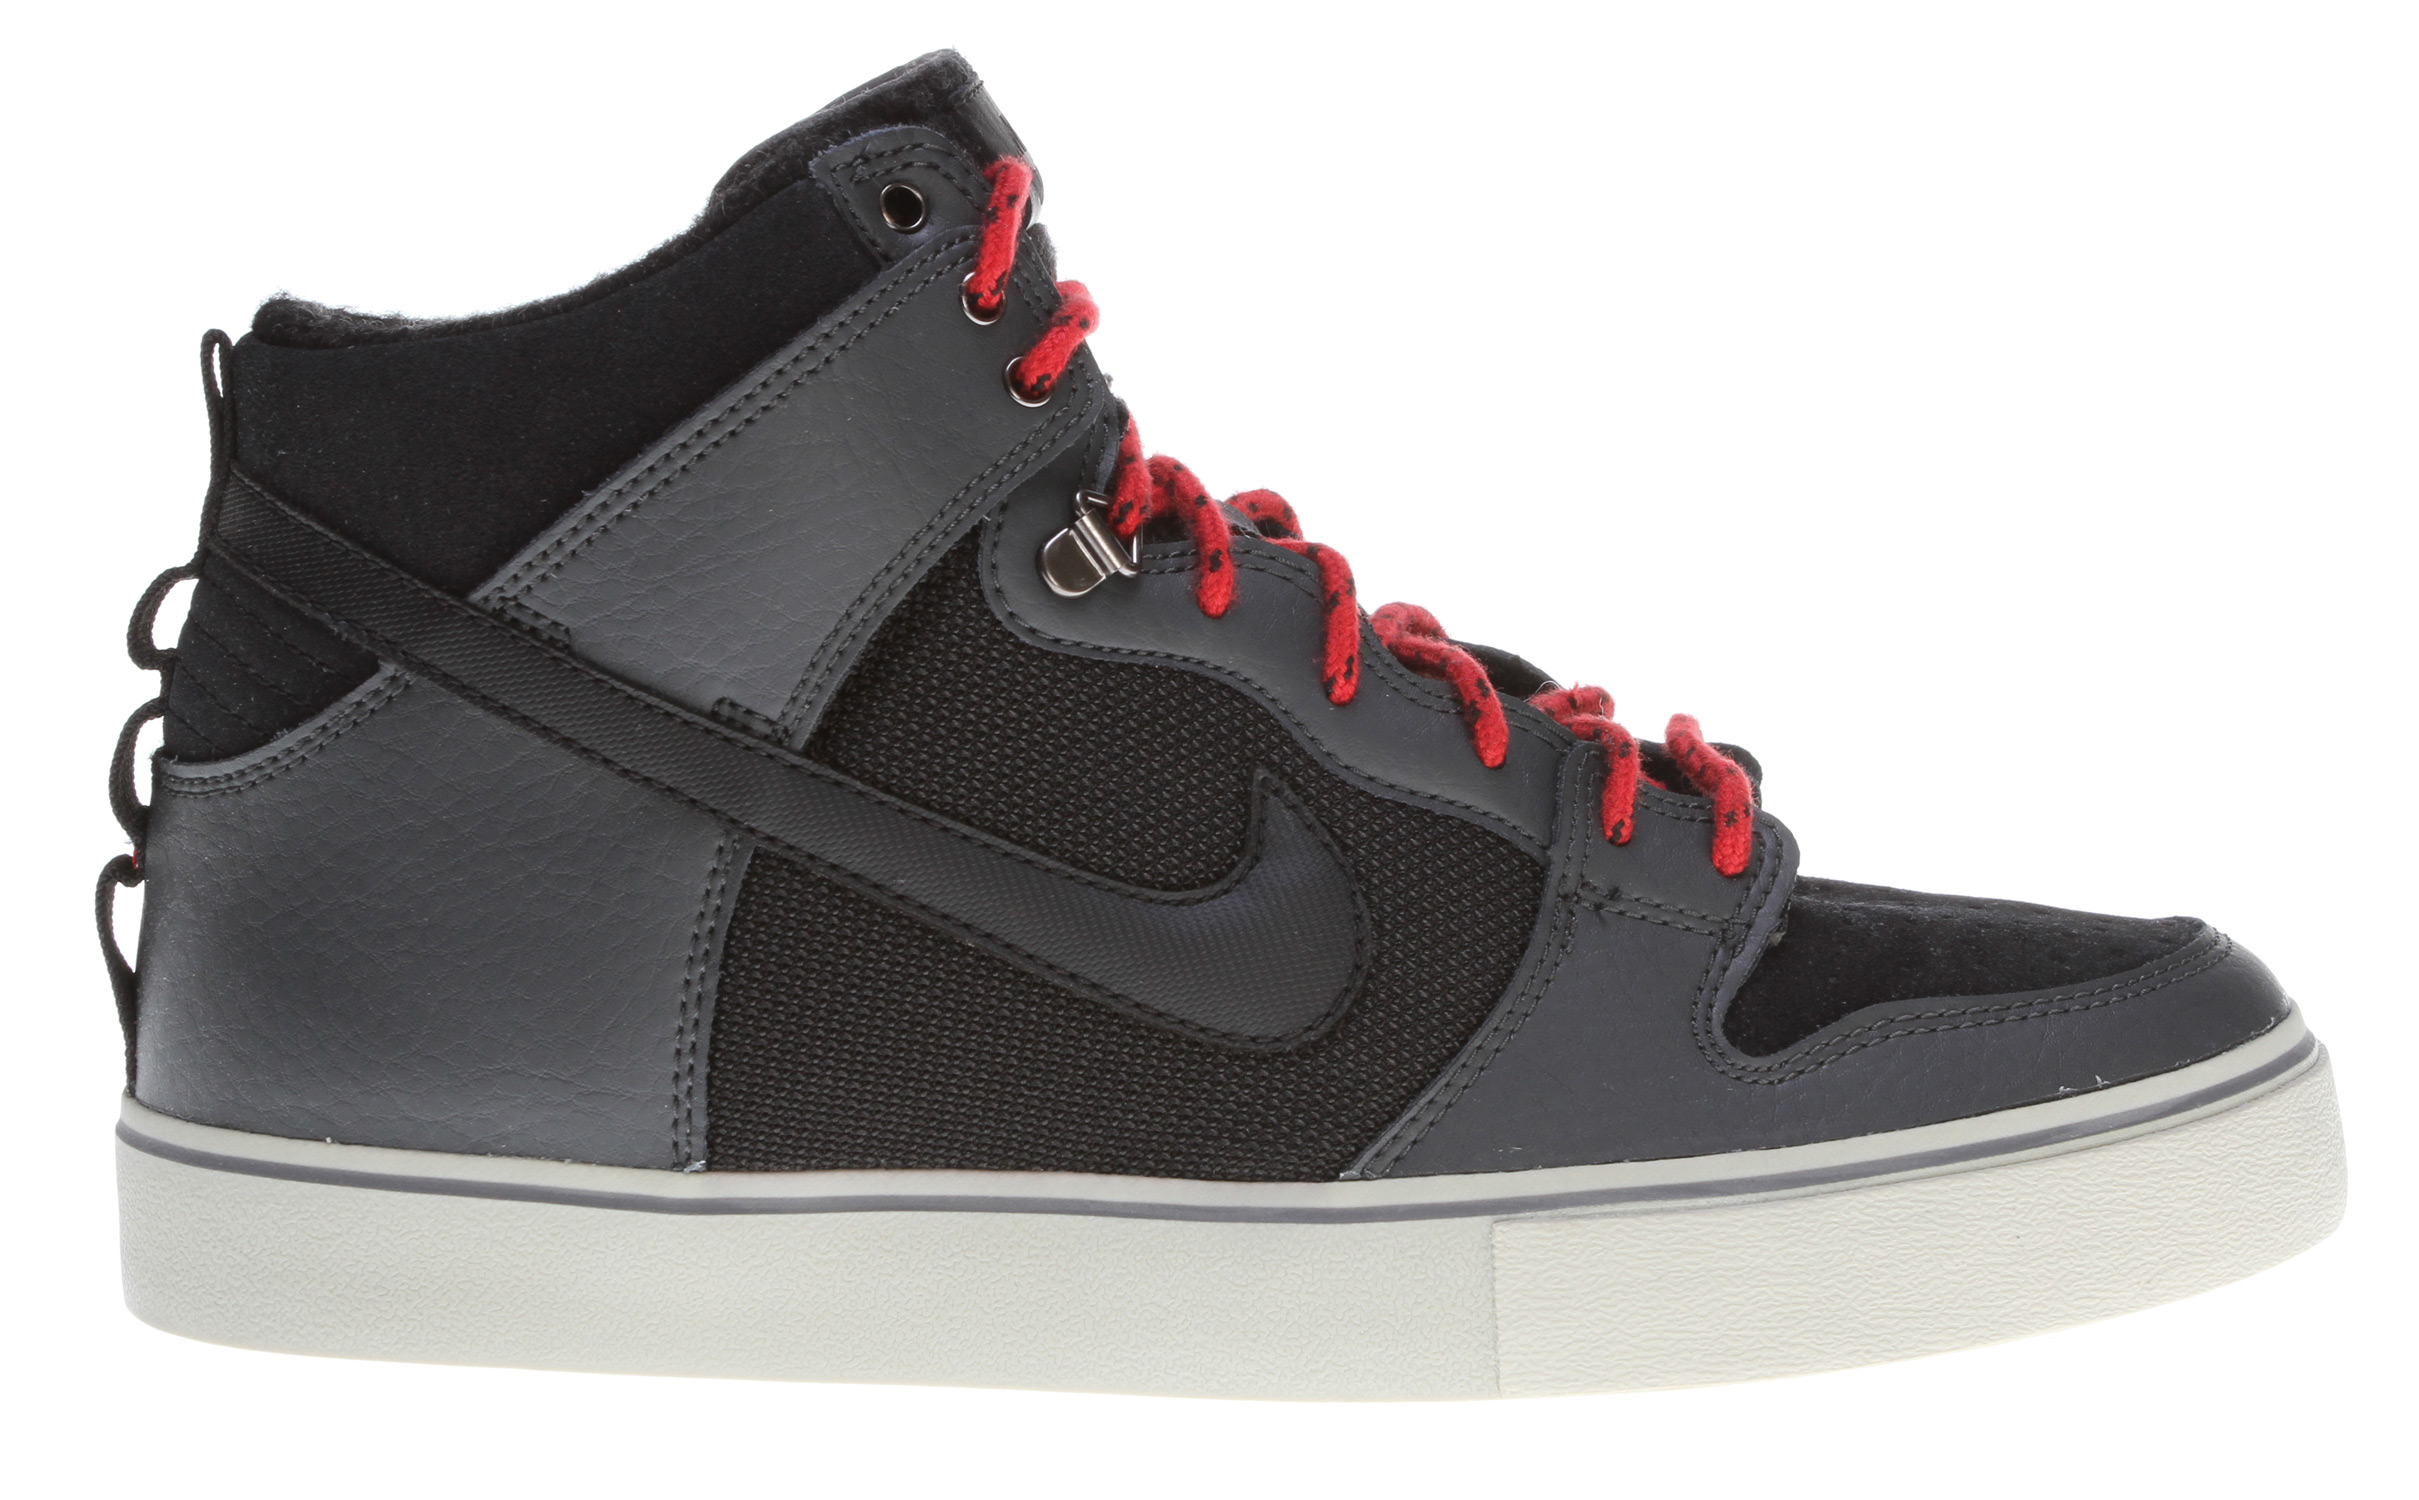 Skateboard Key Features of the Nike Dunk High Lr Skate Shoes: MIDSOLE: Combination drop-in midsole/sock liner designed for maximum comfort and impact protection. UPPER: Leather, suede and Nubuck with classic skate overlays. Lightweight mesh on the tongue and perforations on the vamp for increased breathability. Classic styling with durability and protection. Excellent board control in a low-profile outsole while maintaining good impact absorption. OUTSOLE: Rubber outsole for durability. Designed for flexibility and board feel. - $81.95